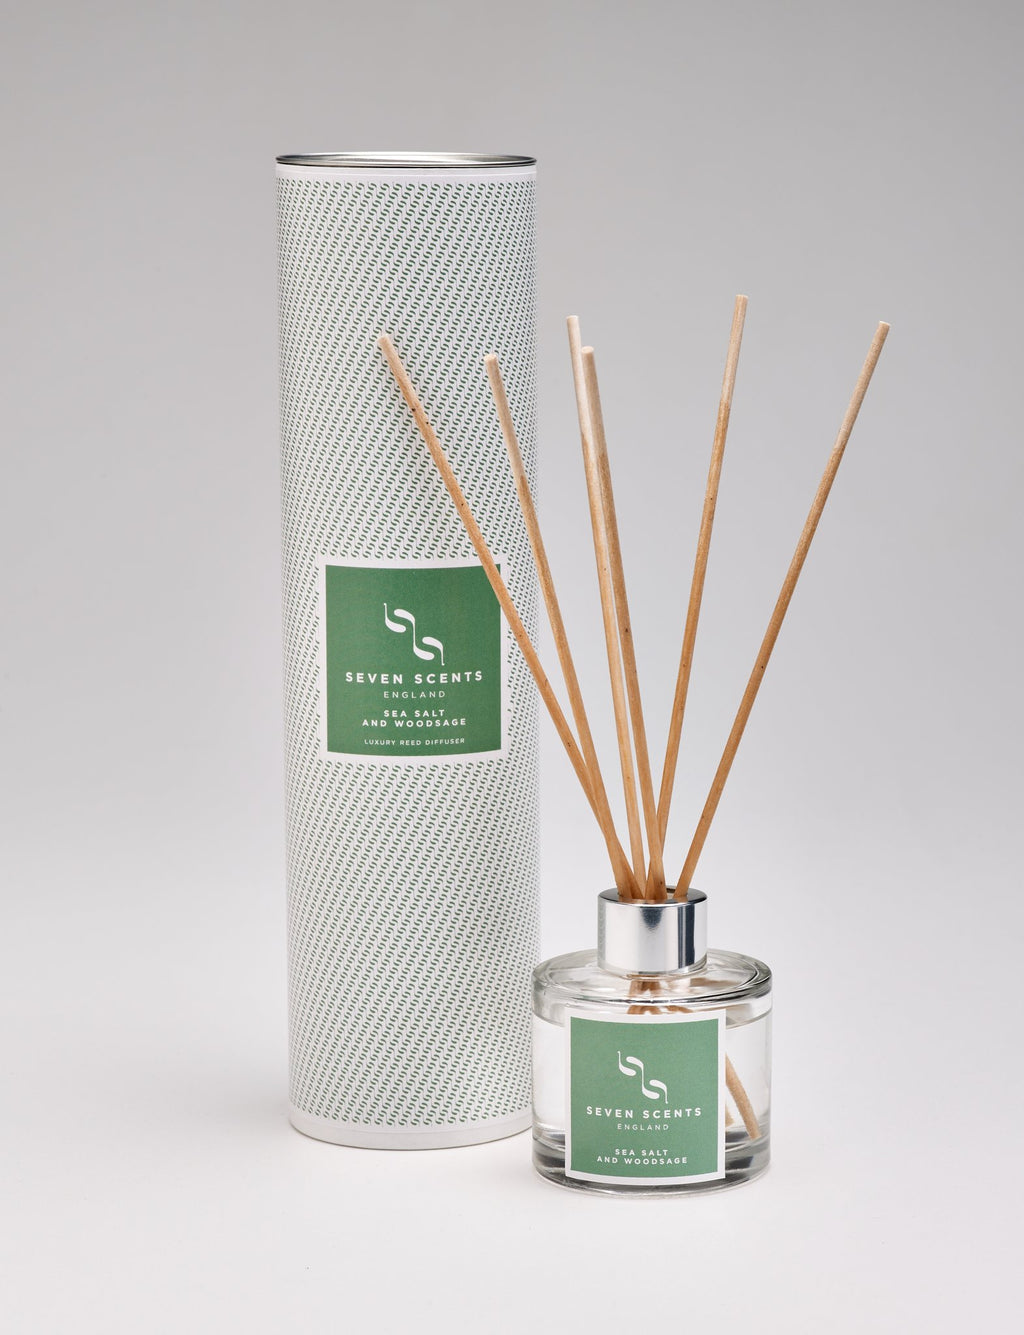 Seven Scents Sea Salt & Wood Sage Diffuser